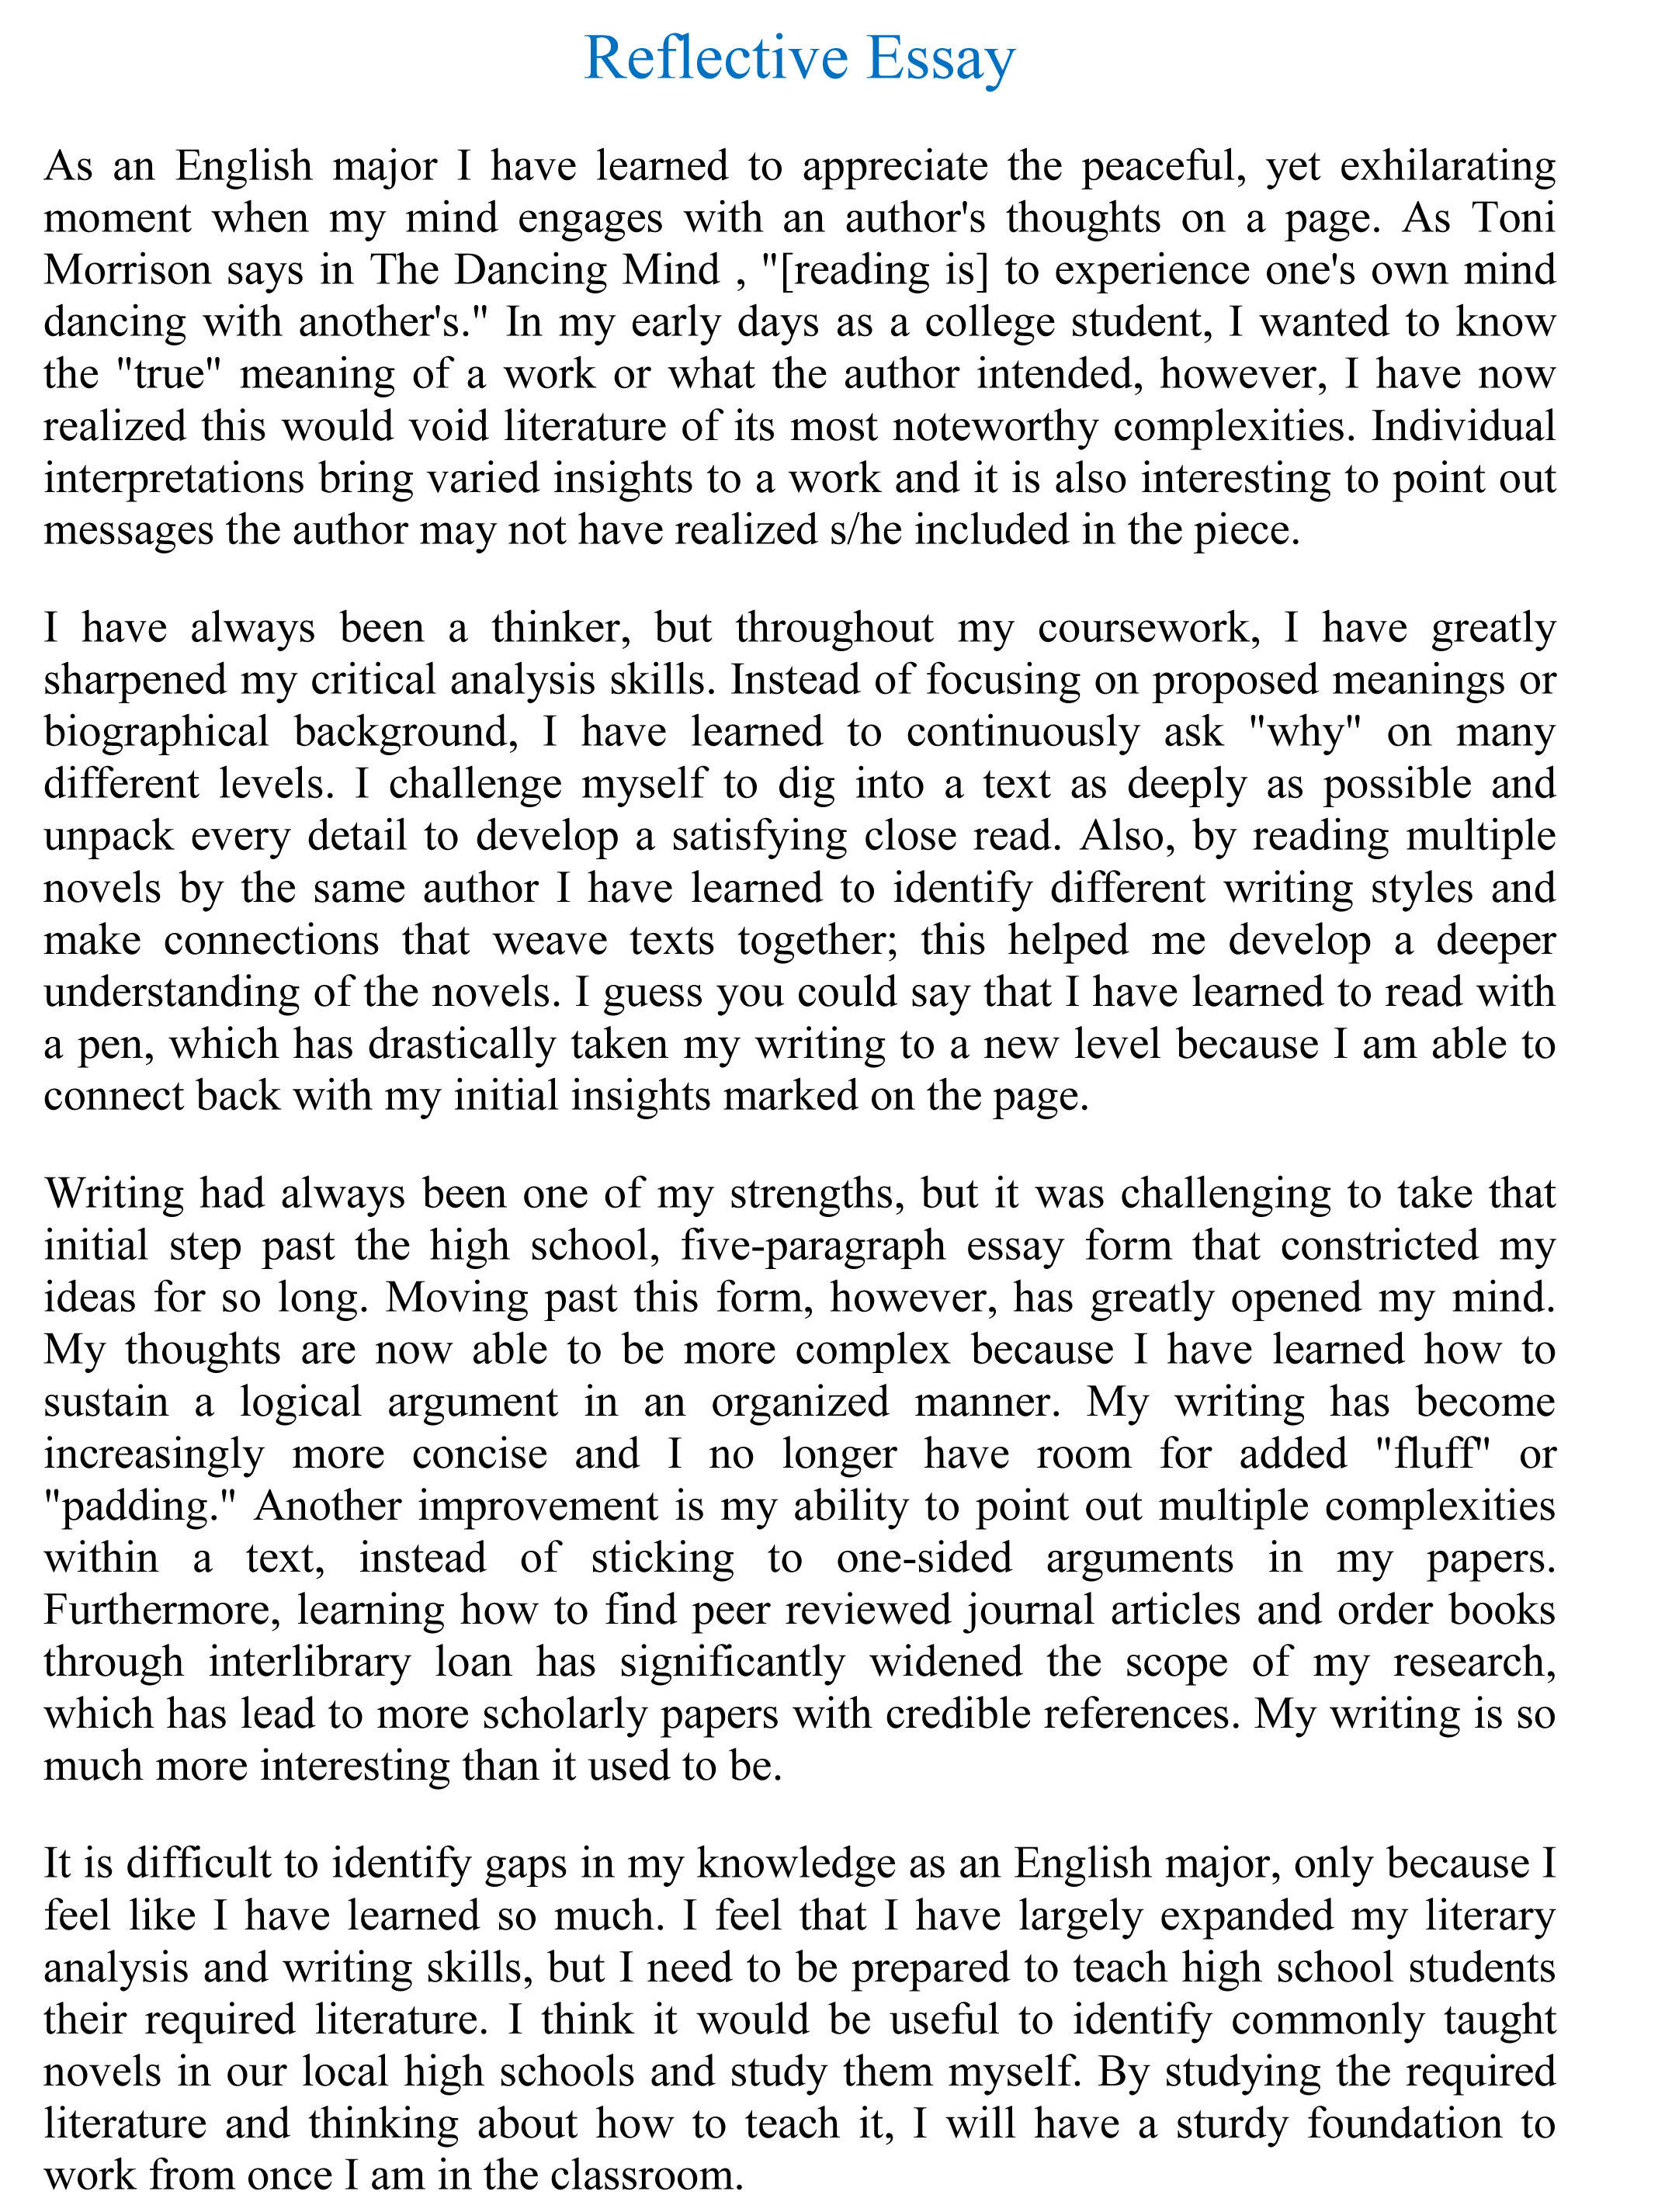 Belonging essay introduction